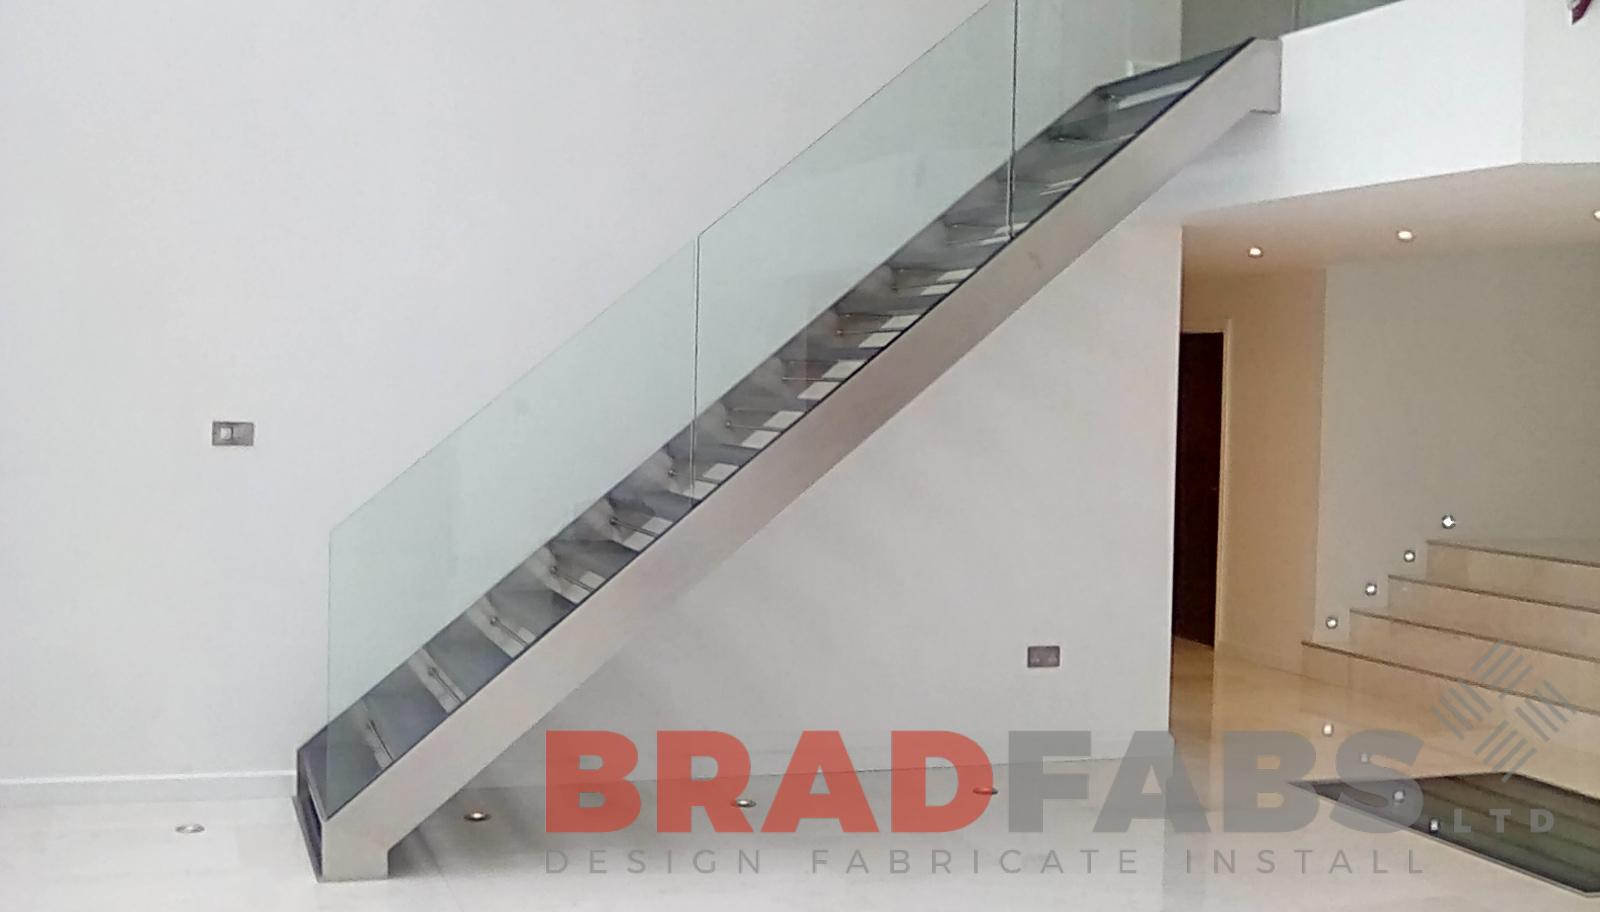 beautiful modern straight staircase in stainless steel with open treads and infinity glass balustrade by Bradfabs